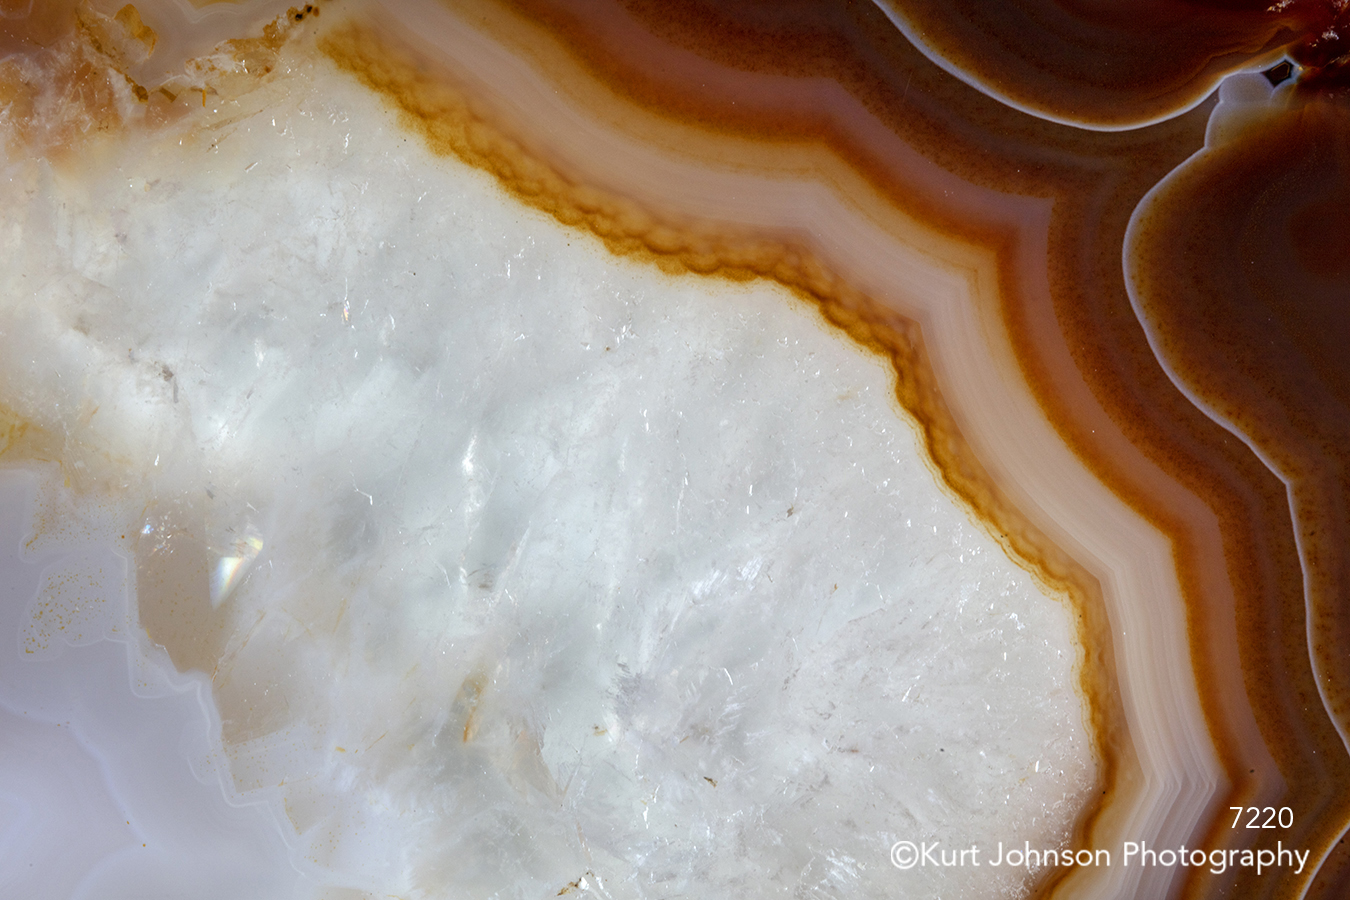 brown lines pattern white crystal geode agate texture stone rock close up detail